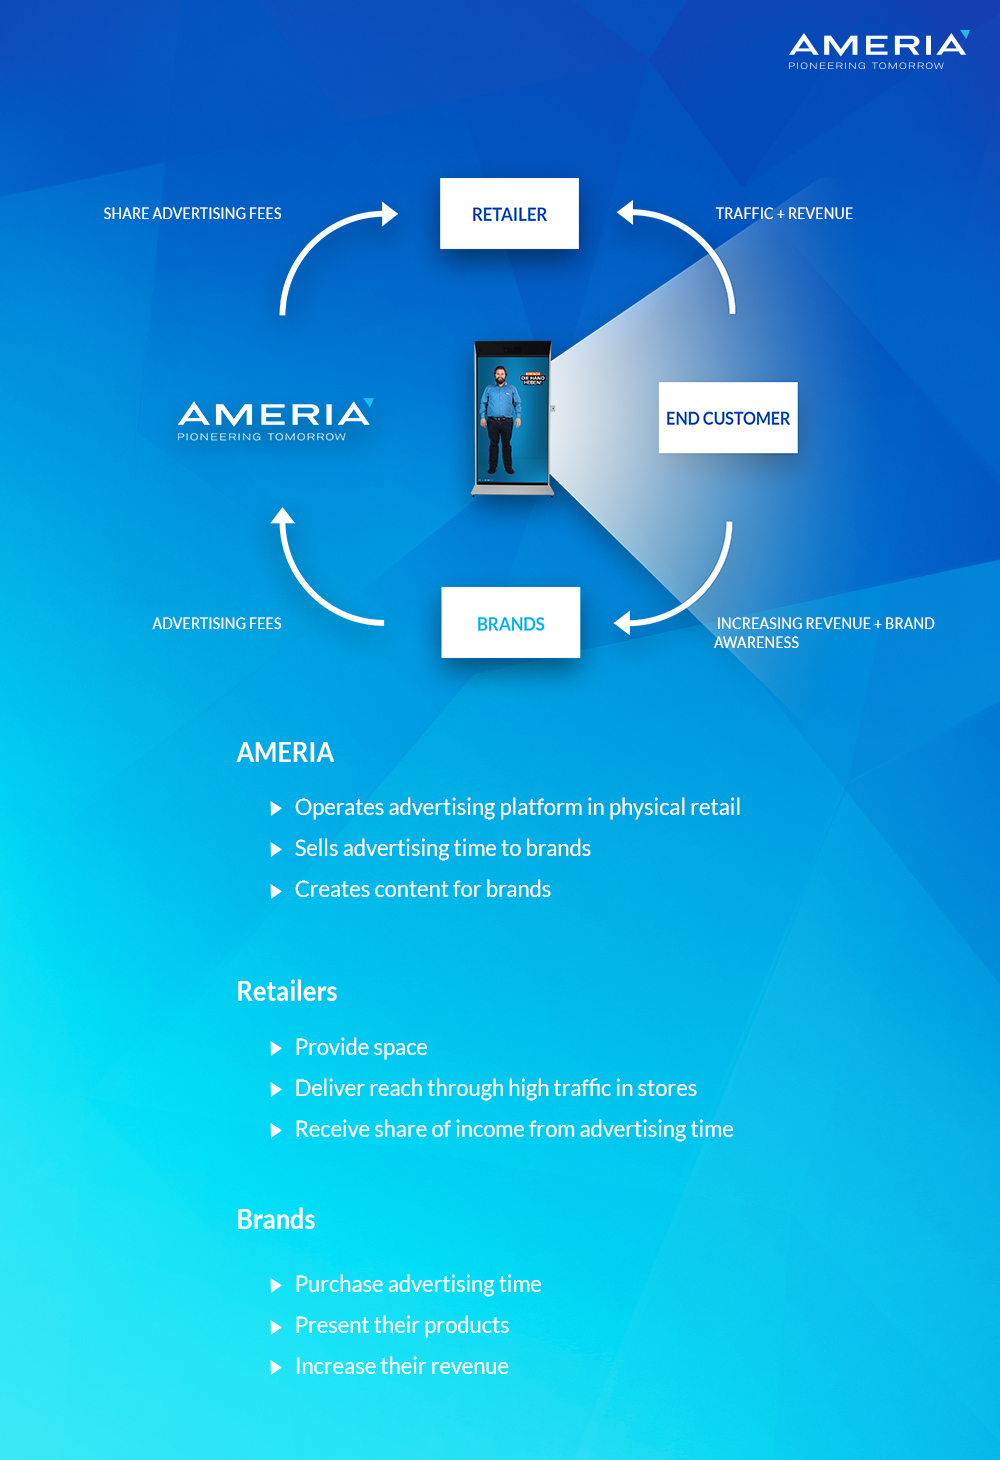 New AMERIA business model